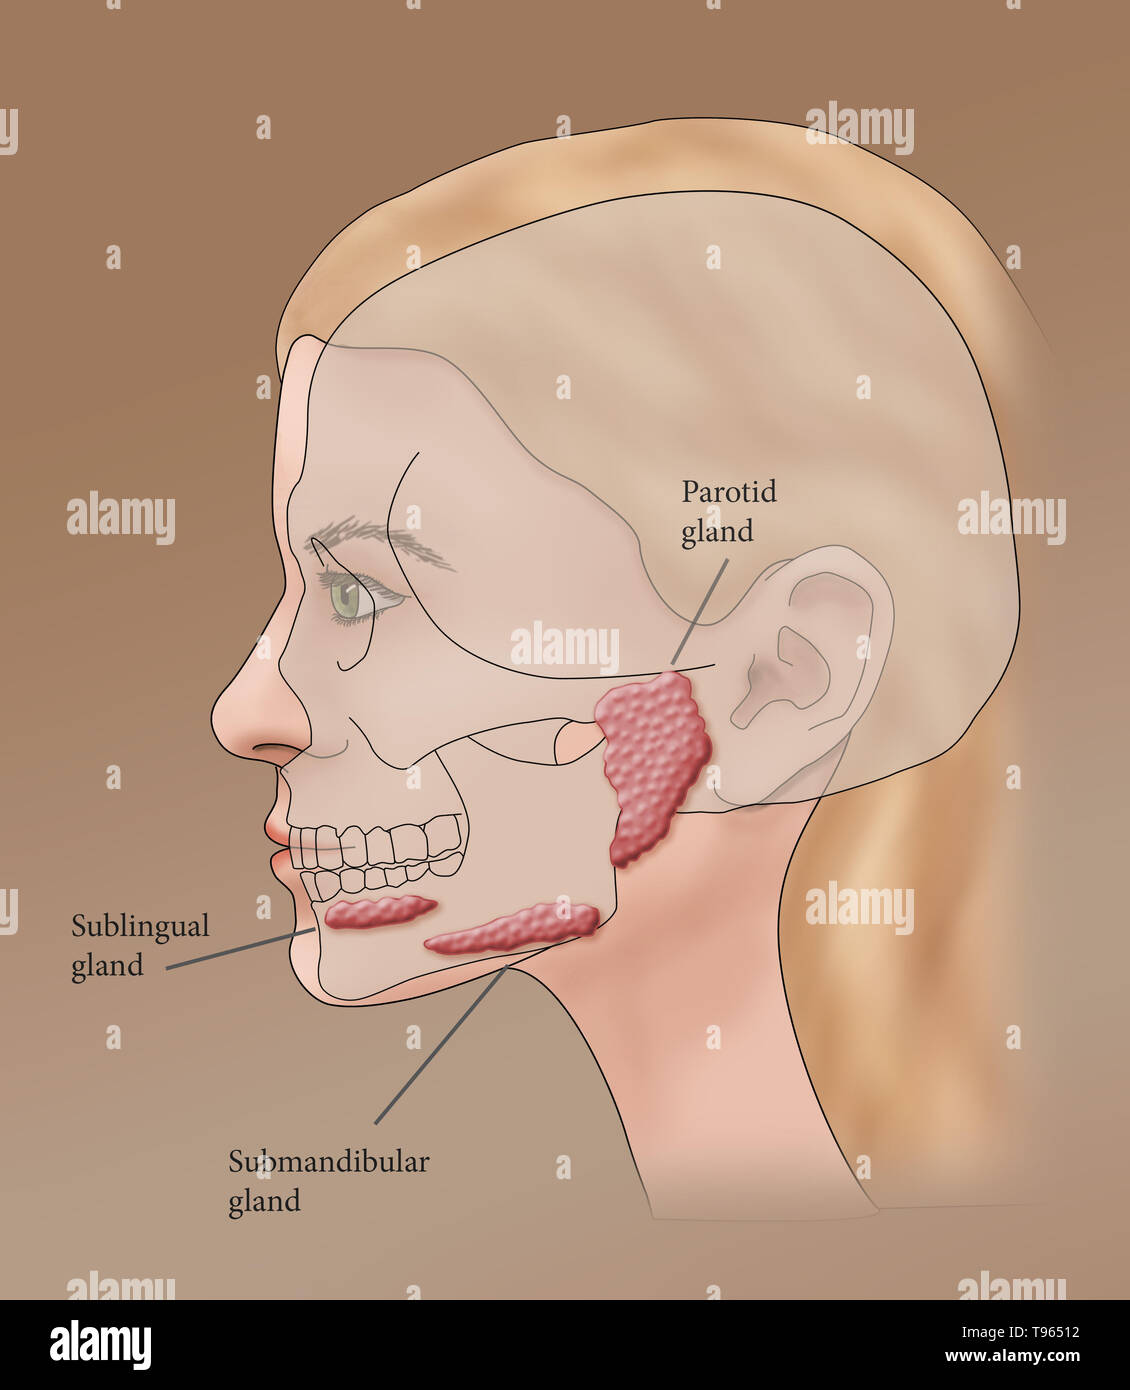 hight resolution of illustration showing the location of the salivary glands in a female profile stock image